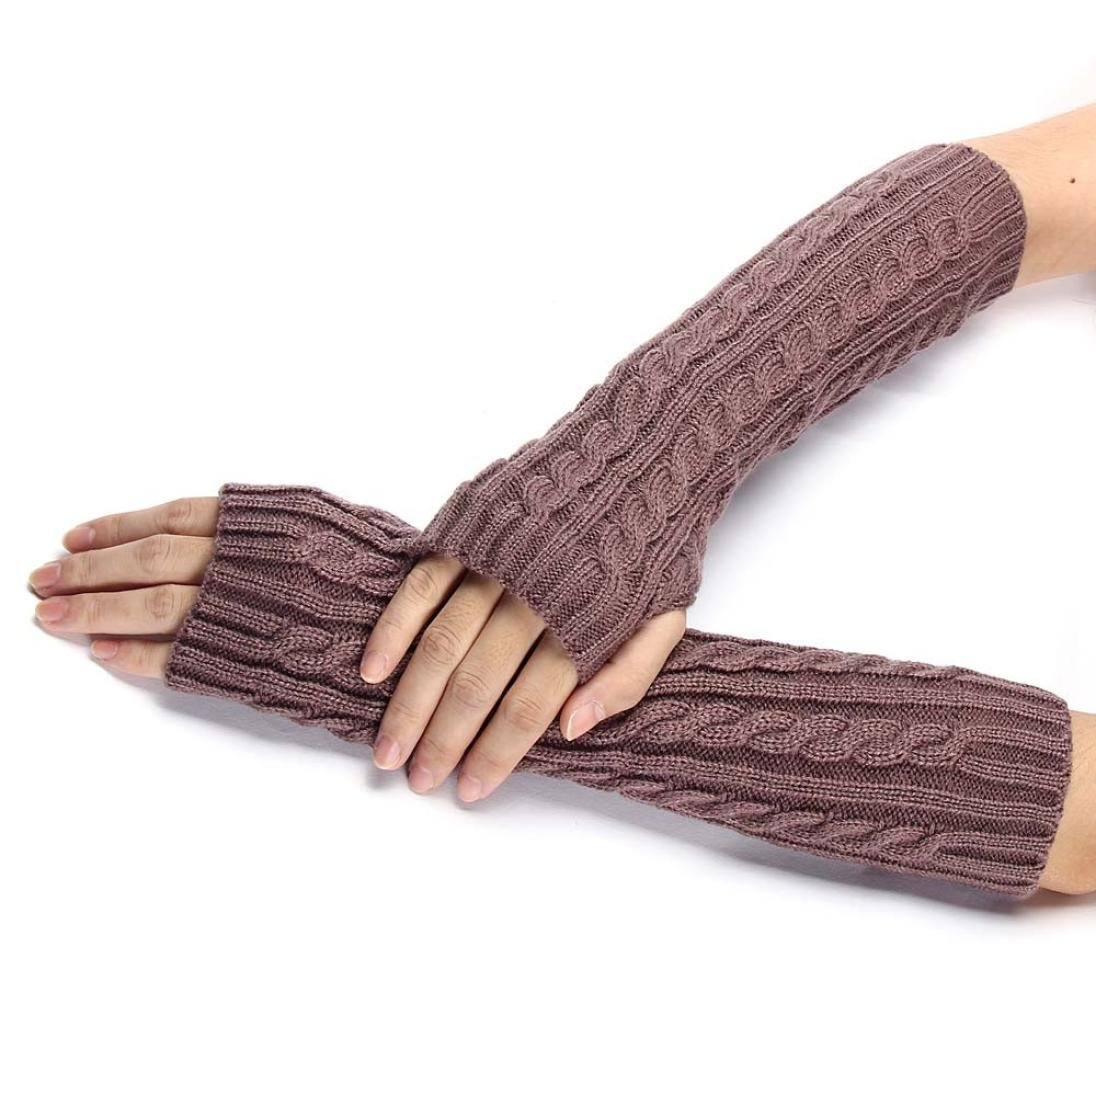 Changeshopping Knitted Arm Fingerless Winter Gloves Unisex Soft Warm Mitten (Black) changeshopping 1 Changeshopping510